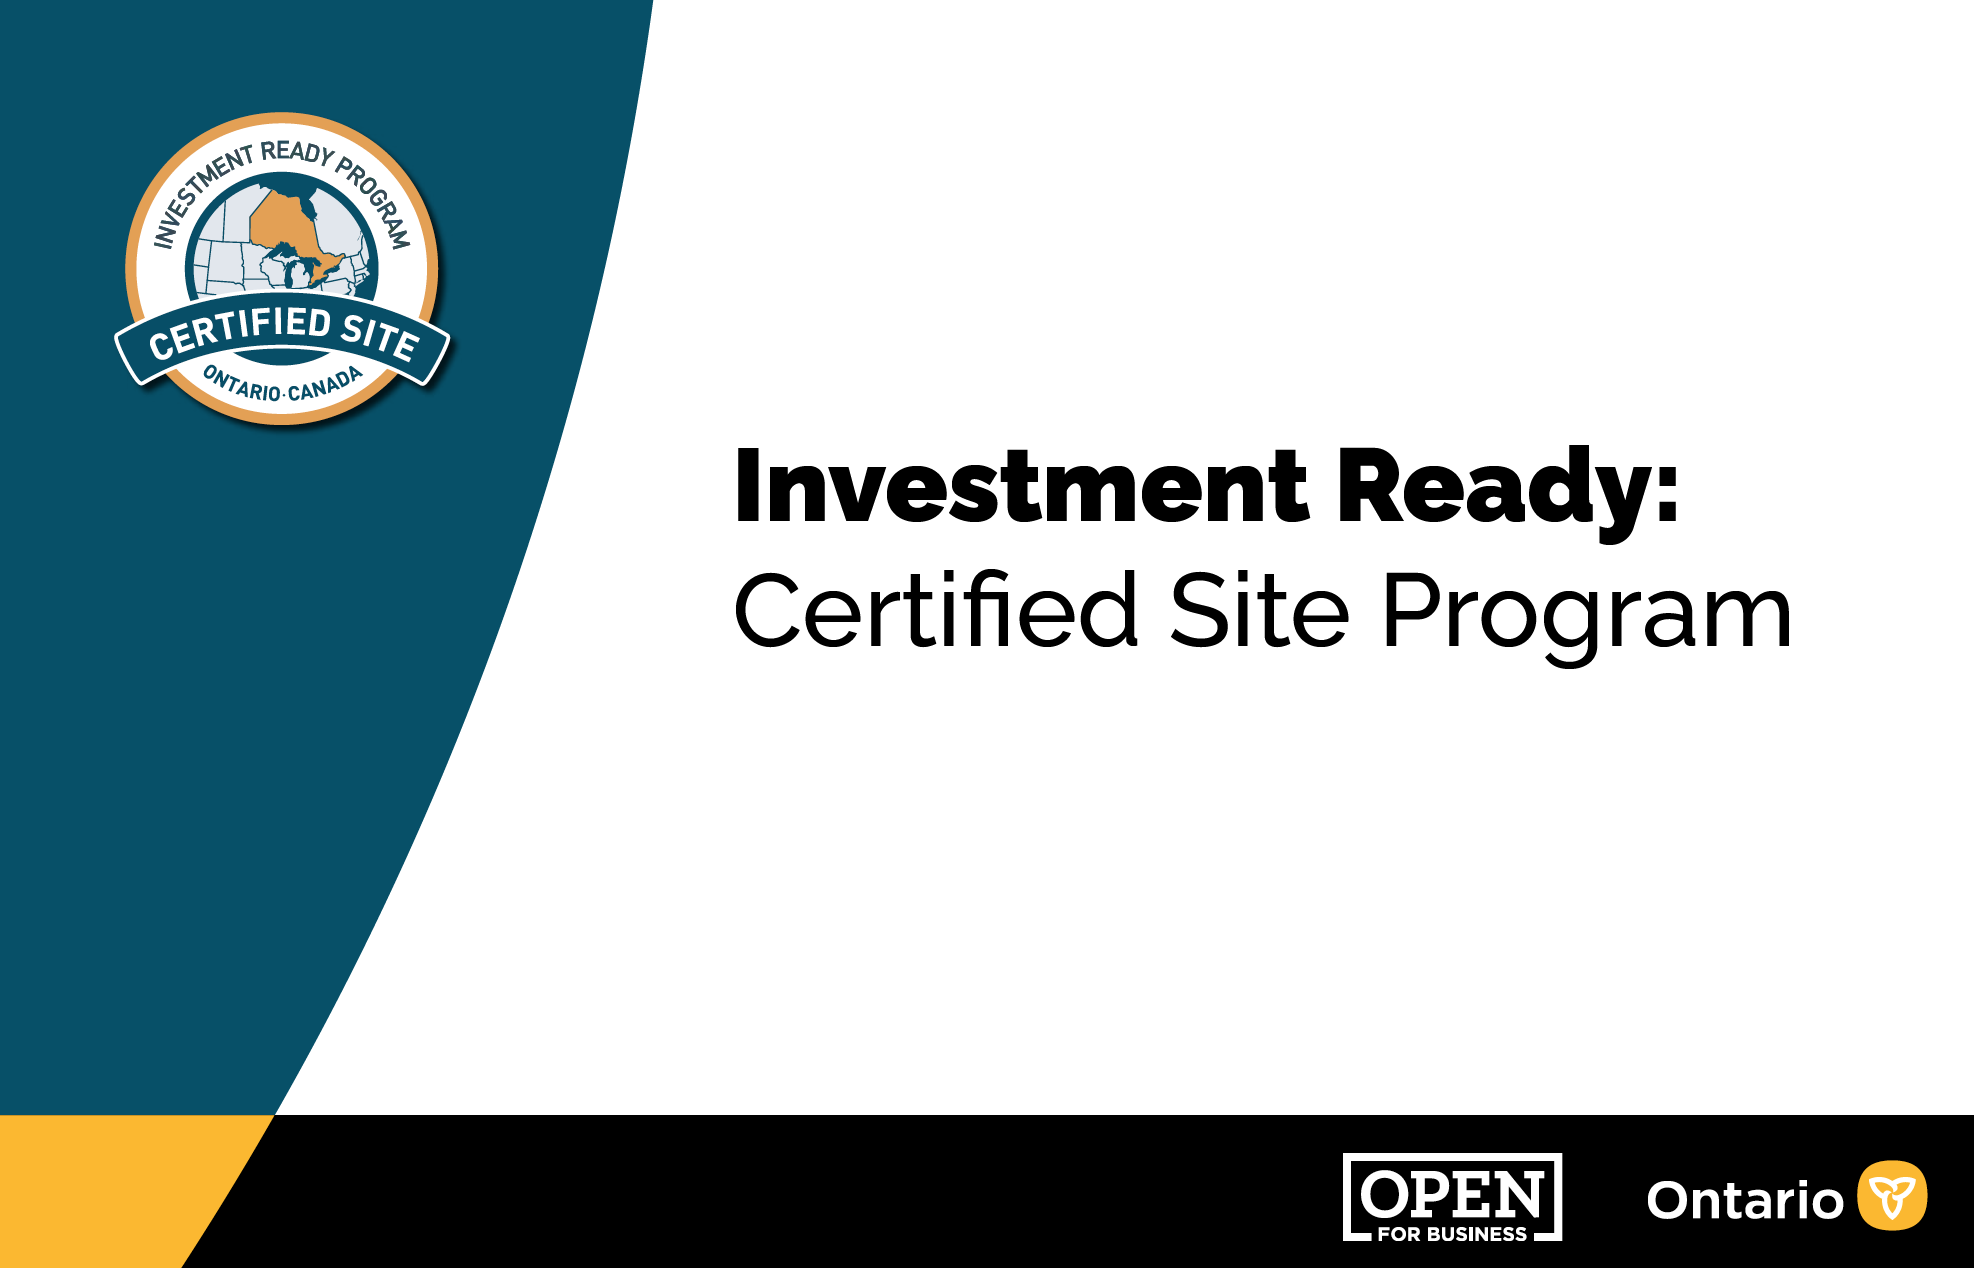 Investment Ready: Certified Site Program